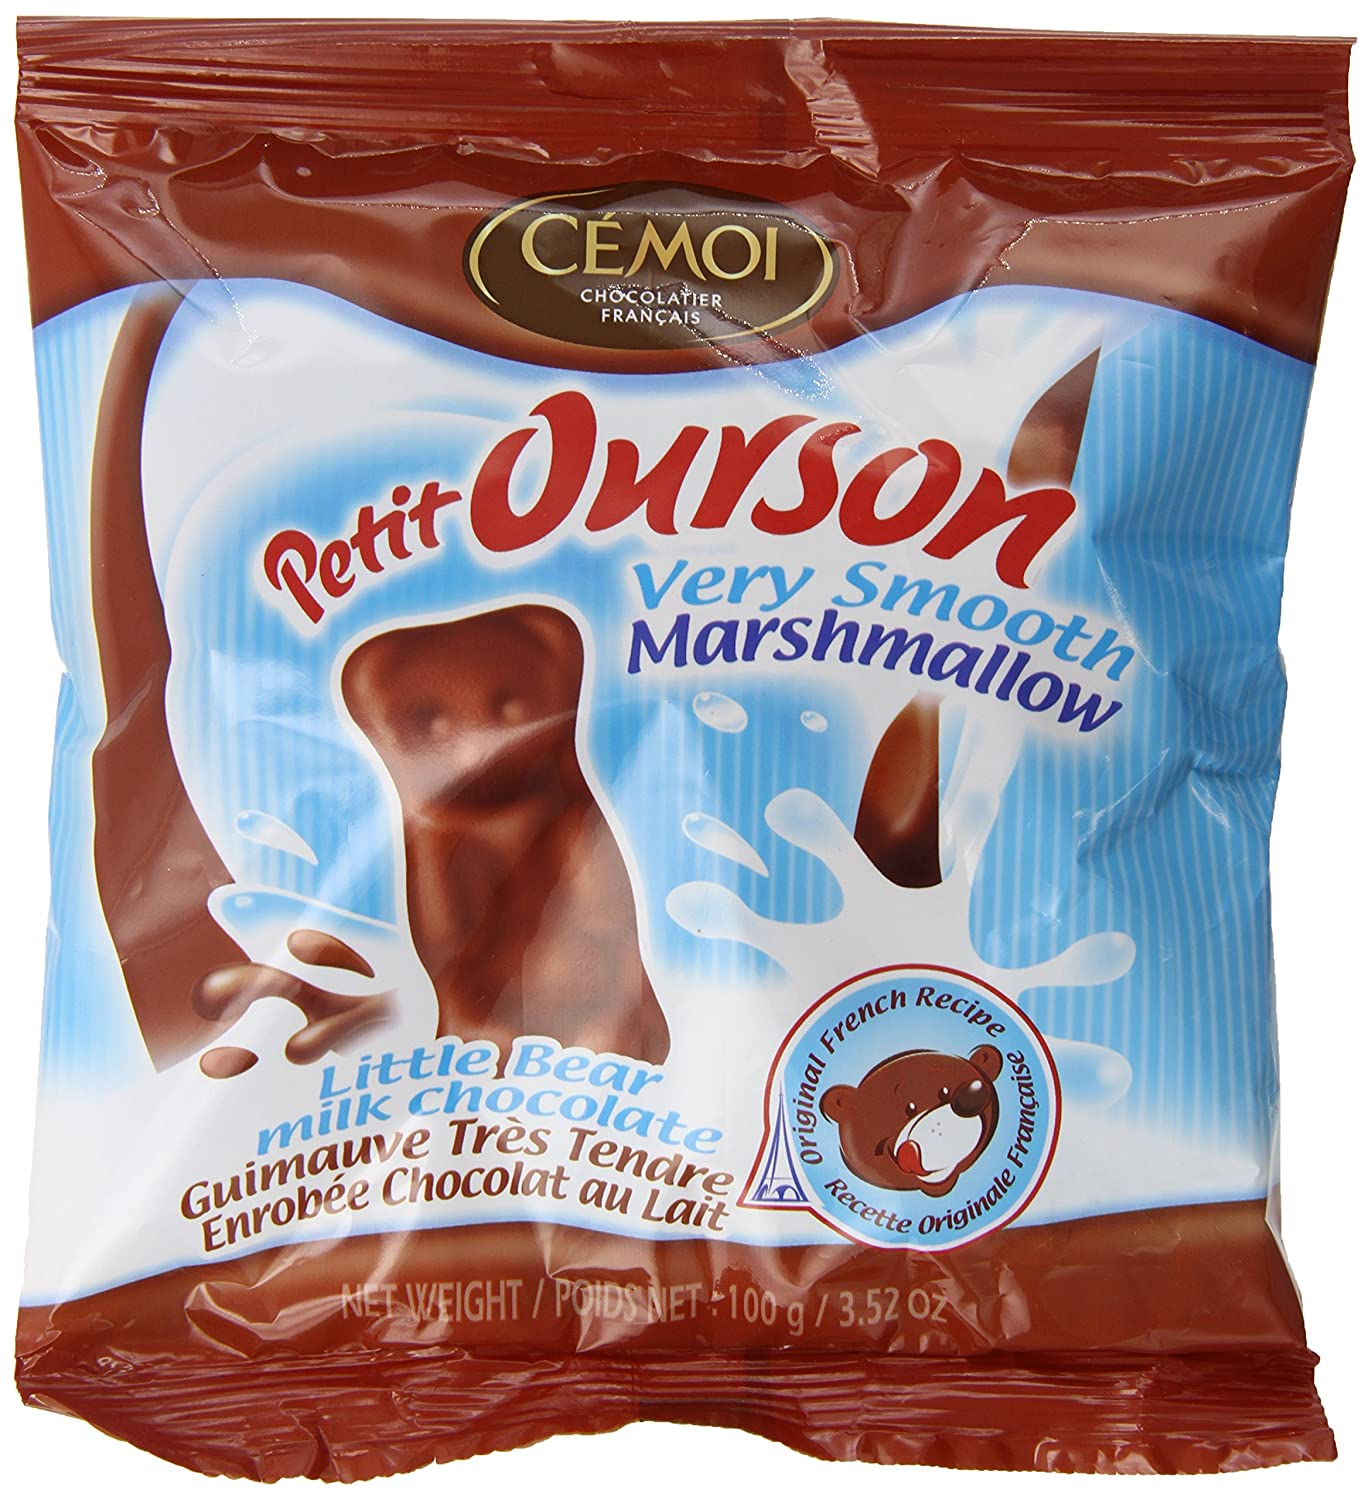 Amazon.com : Cemoi Petit Ourson Marshmallow Bag, Little Bear, 3.52 Ounce (Pack of 20) : Grocery & Gourmet Food